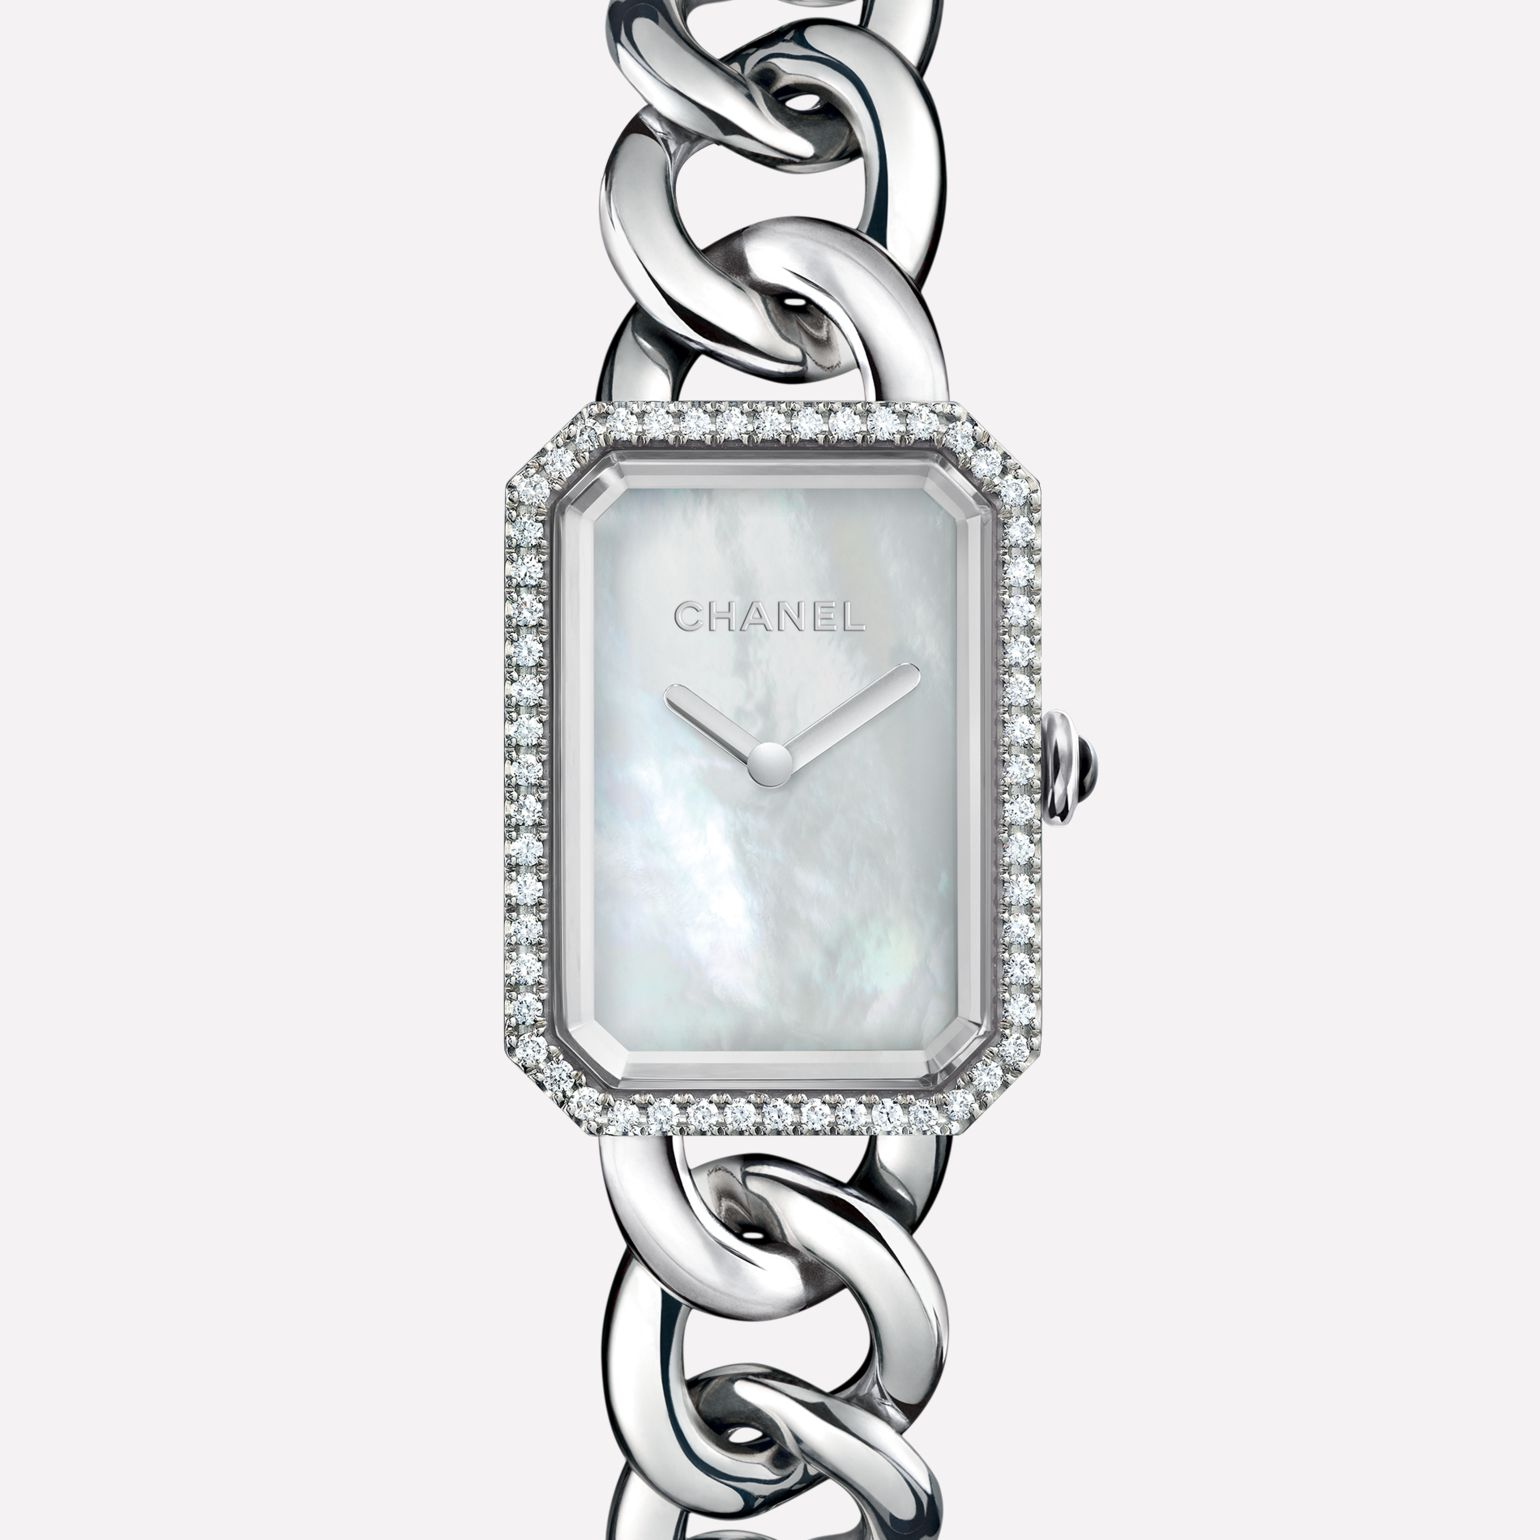 chanel upscale watches jewellery crop watch large editor false product shop scale the subsampling xs cuff white